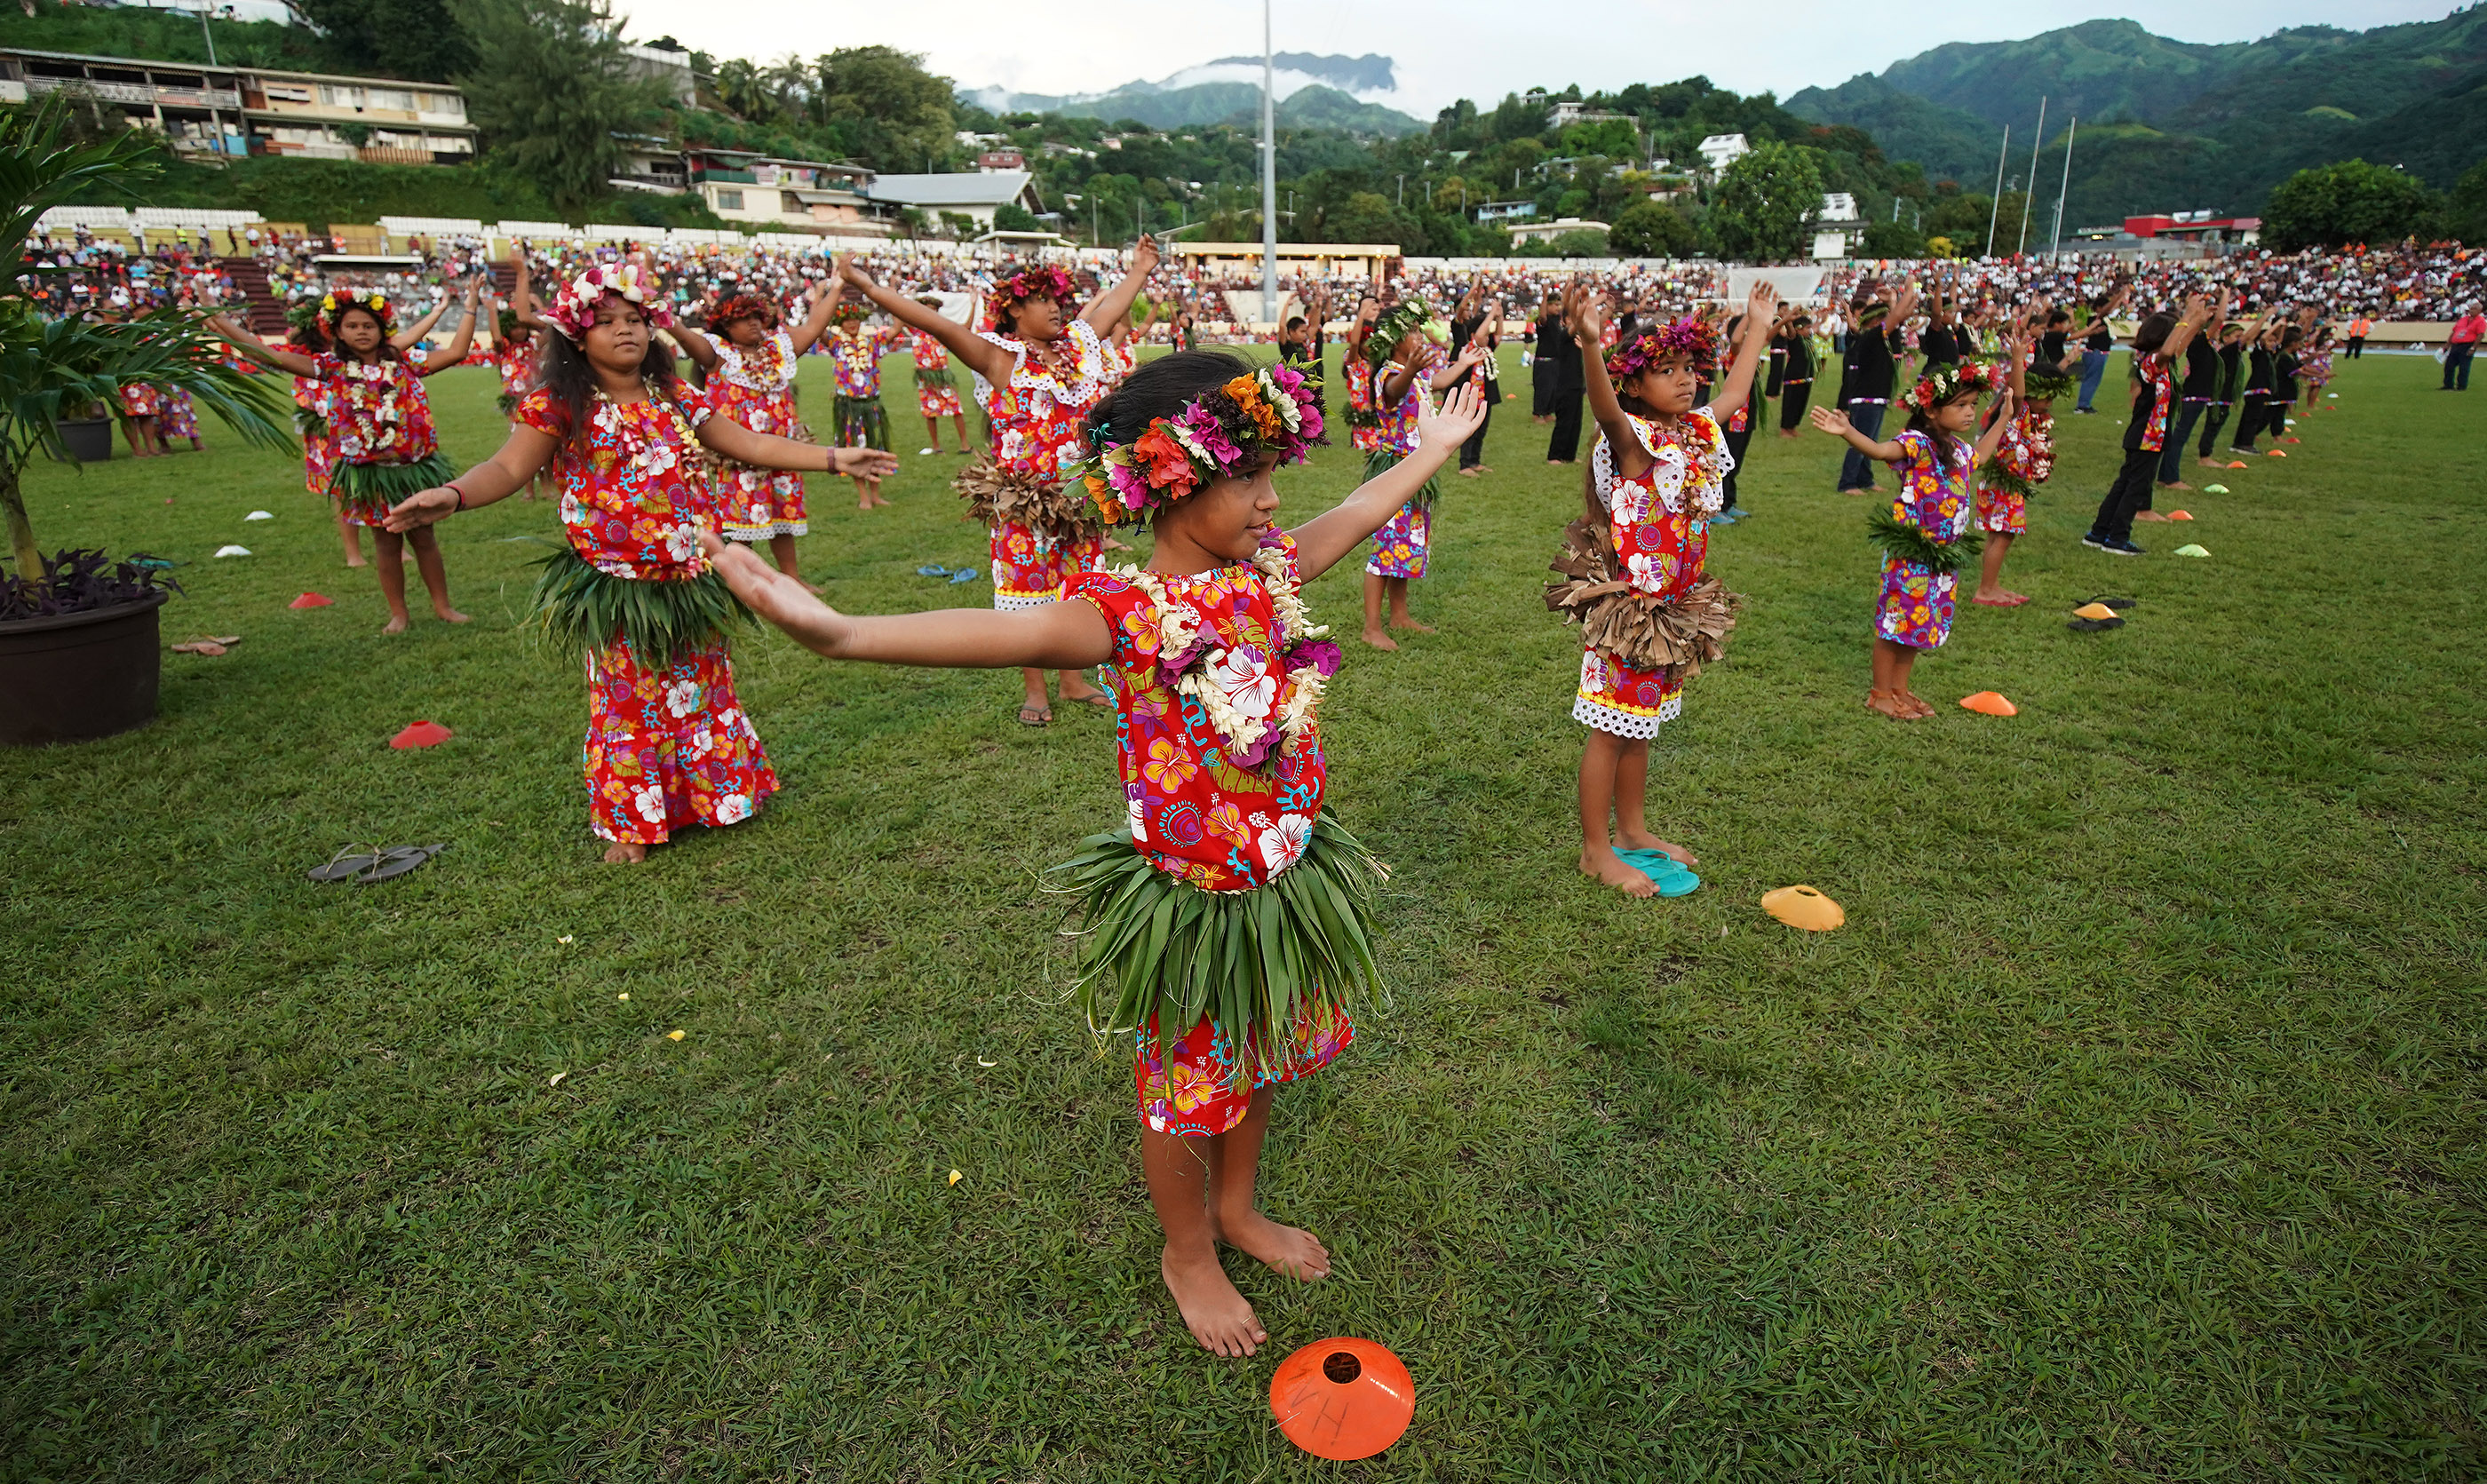 Performers dance during a Tahiti cultural program in Papeete, Tahiti, on May 24, 2019.